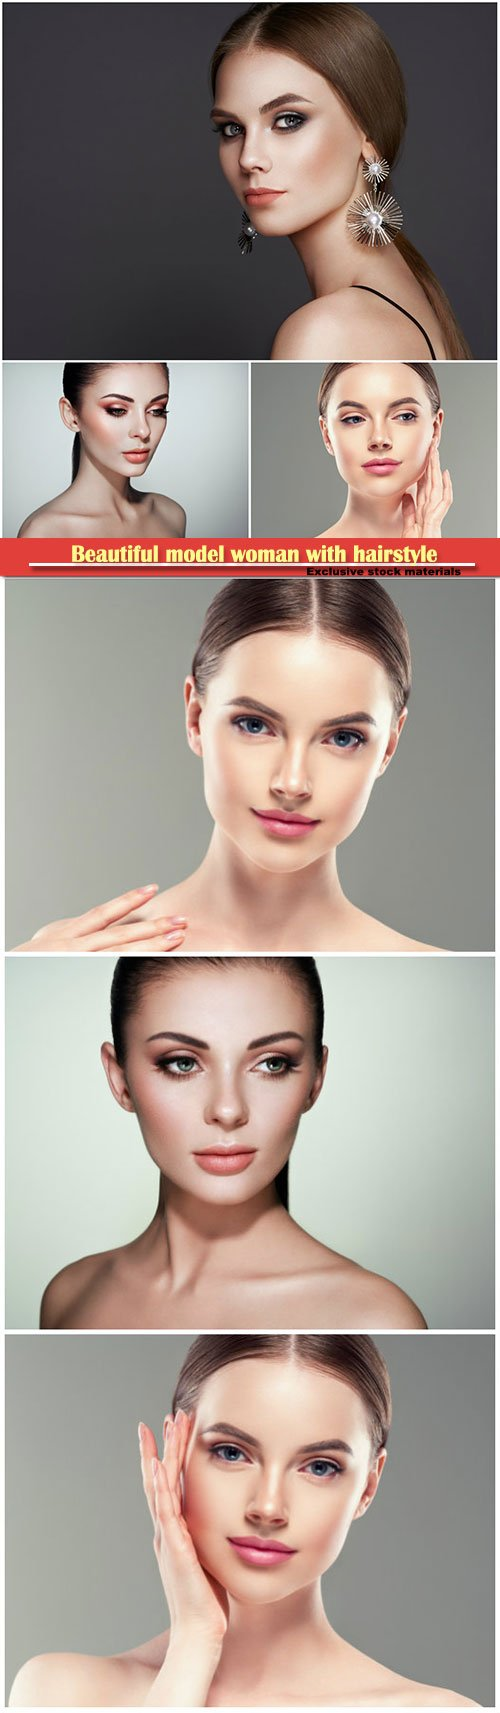 Beautiful model woman with hairstyle and perfect make-up and jewelry